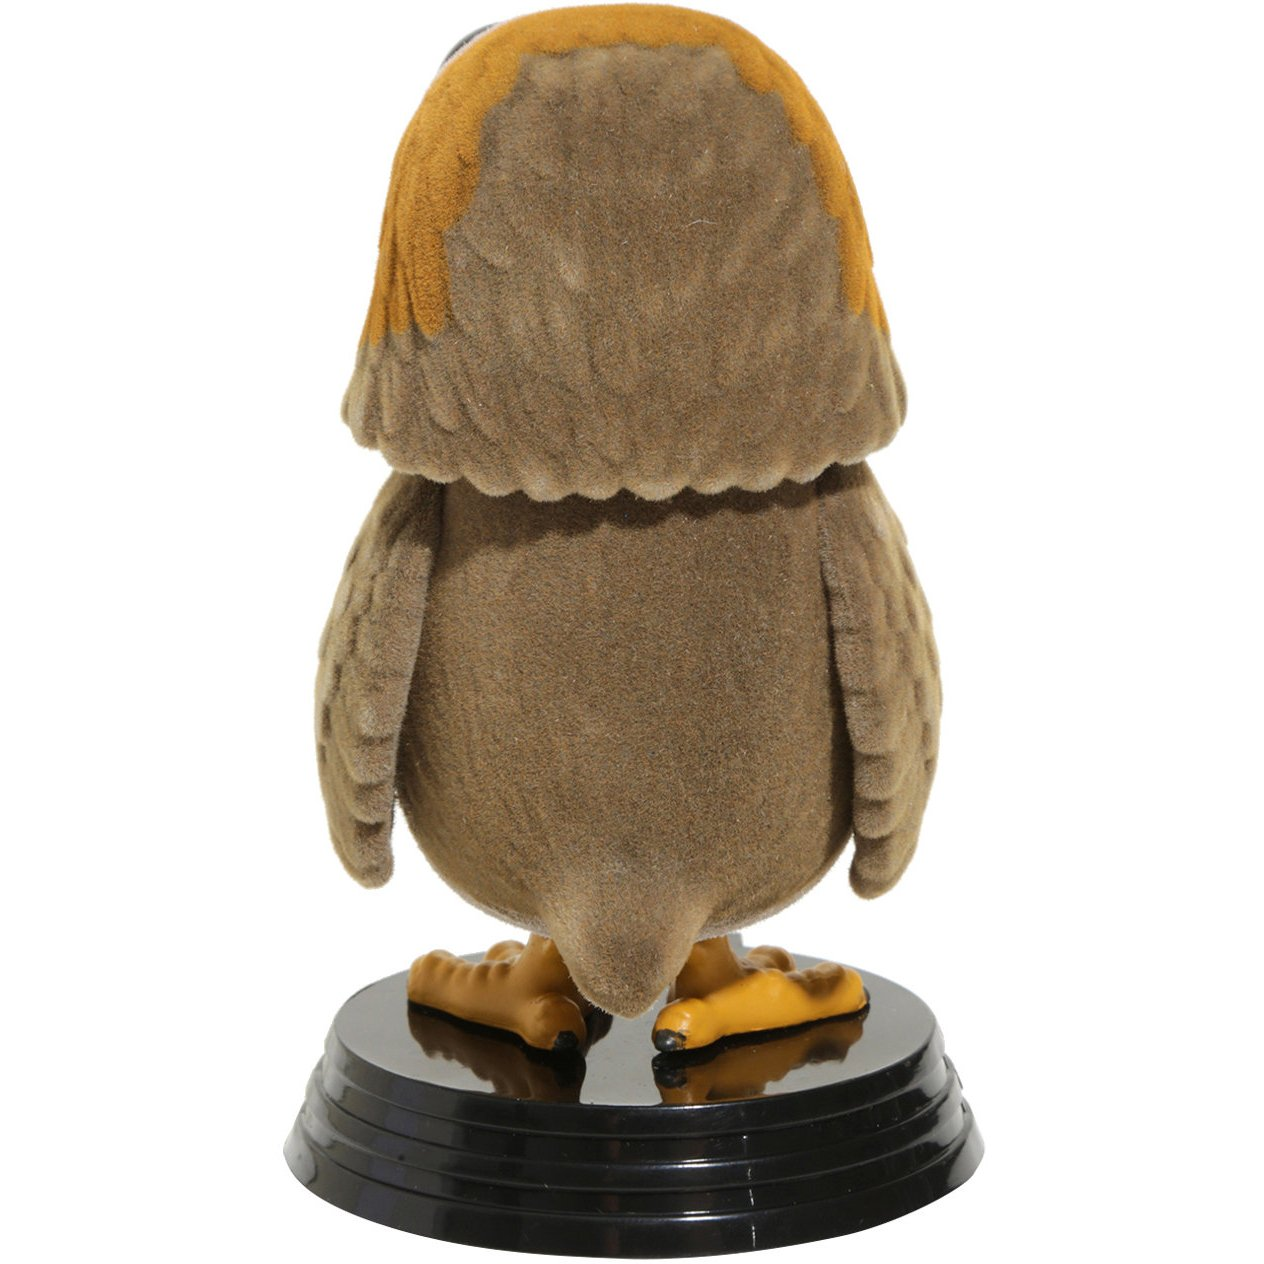 POP Hot Topic Exclusive The Last Jedi Vinyl Figure BCC944R54 14757 x Star Wars Funko PORG 1 Official Star Wars Trading Card Bundle Flocked